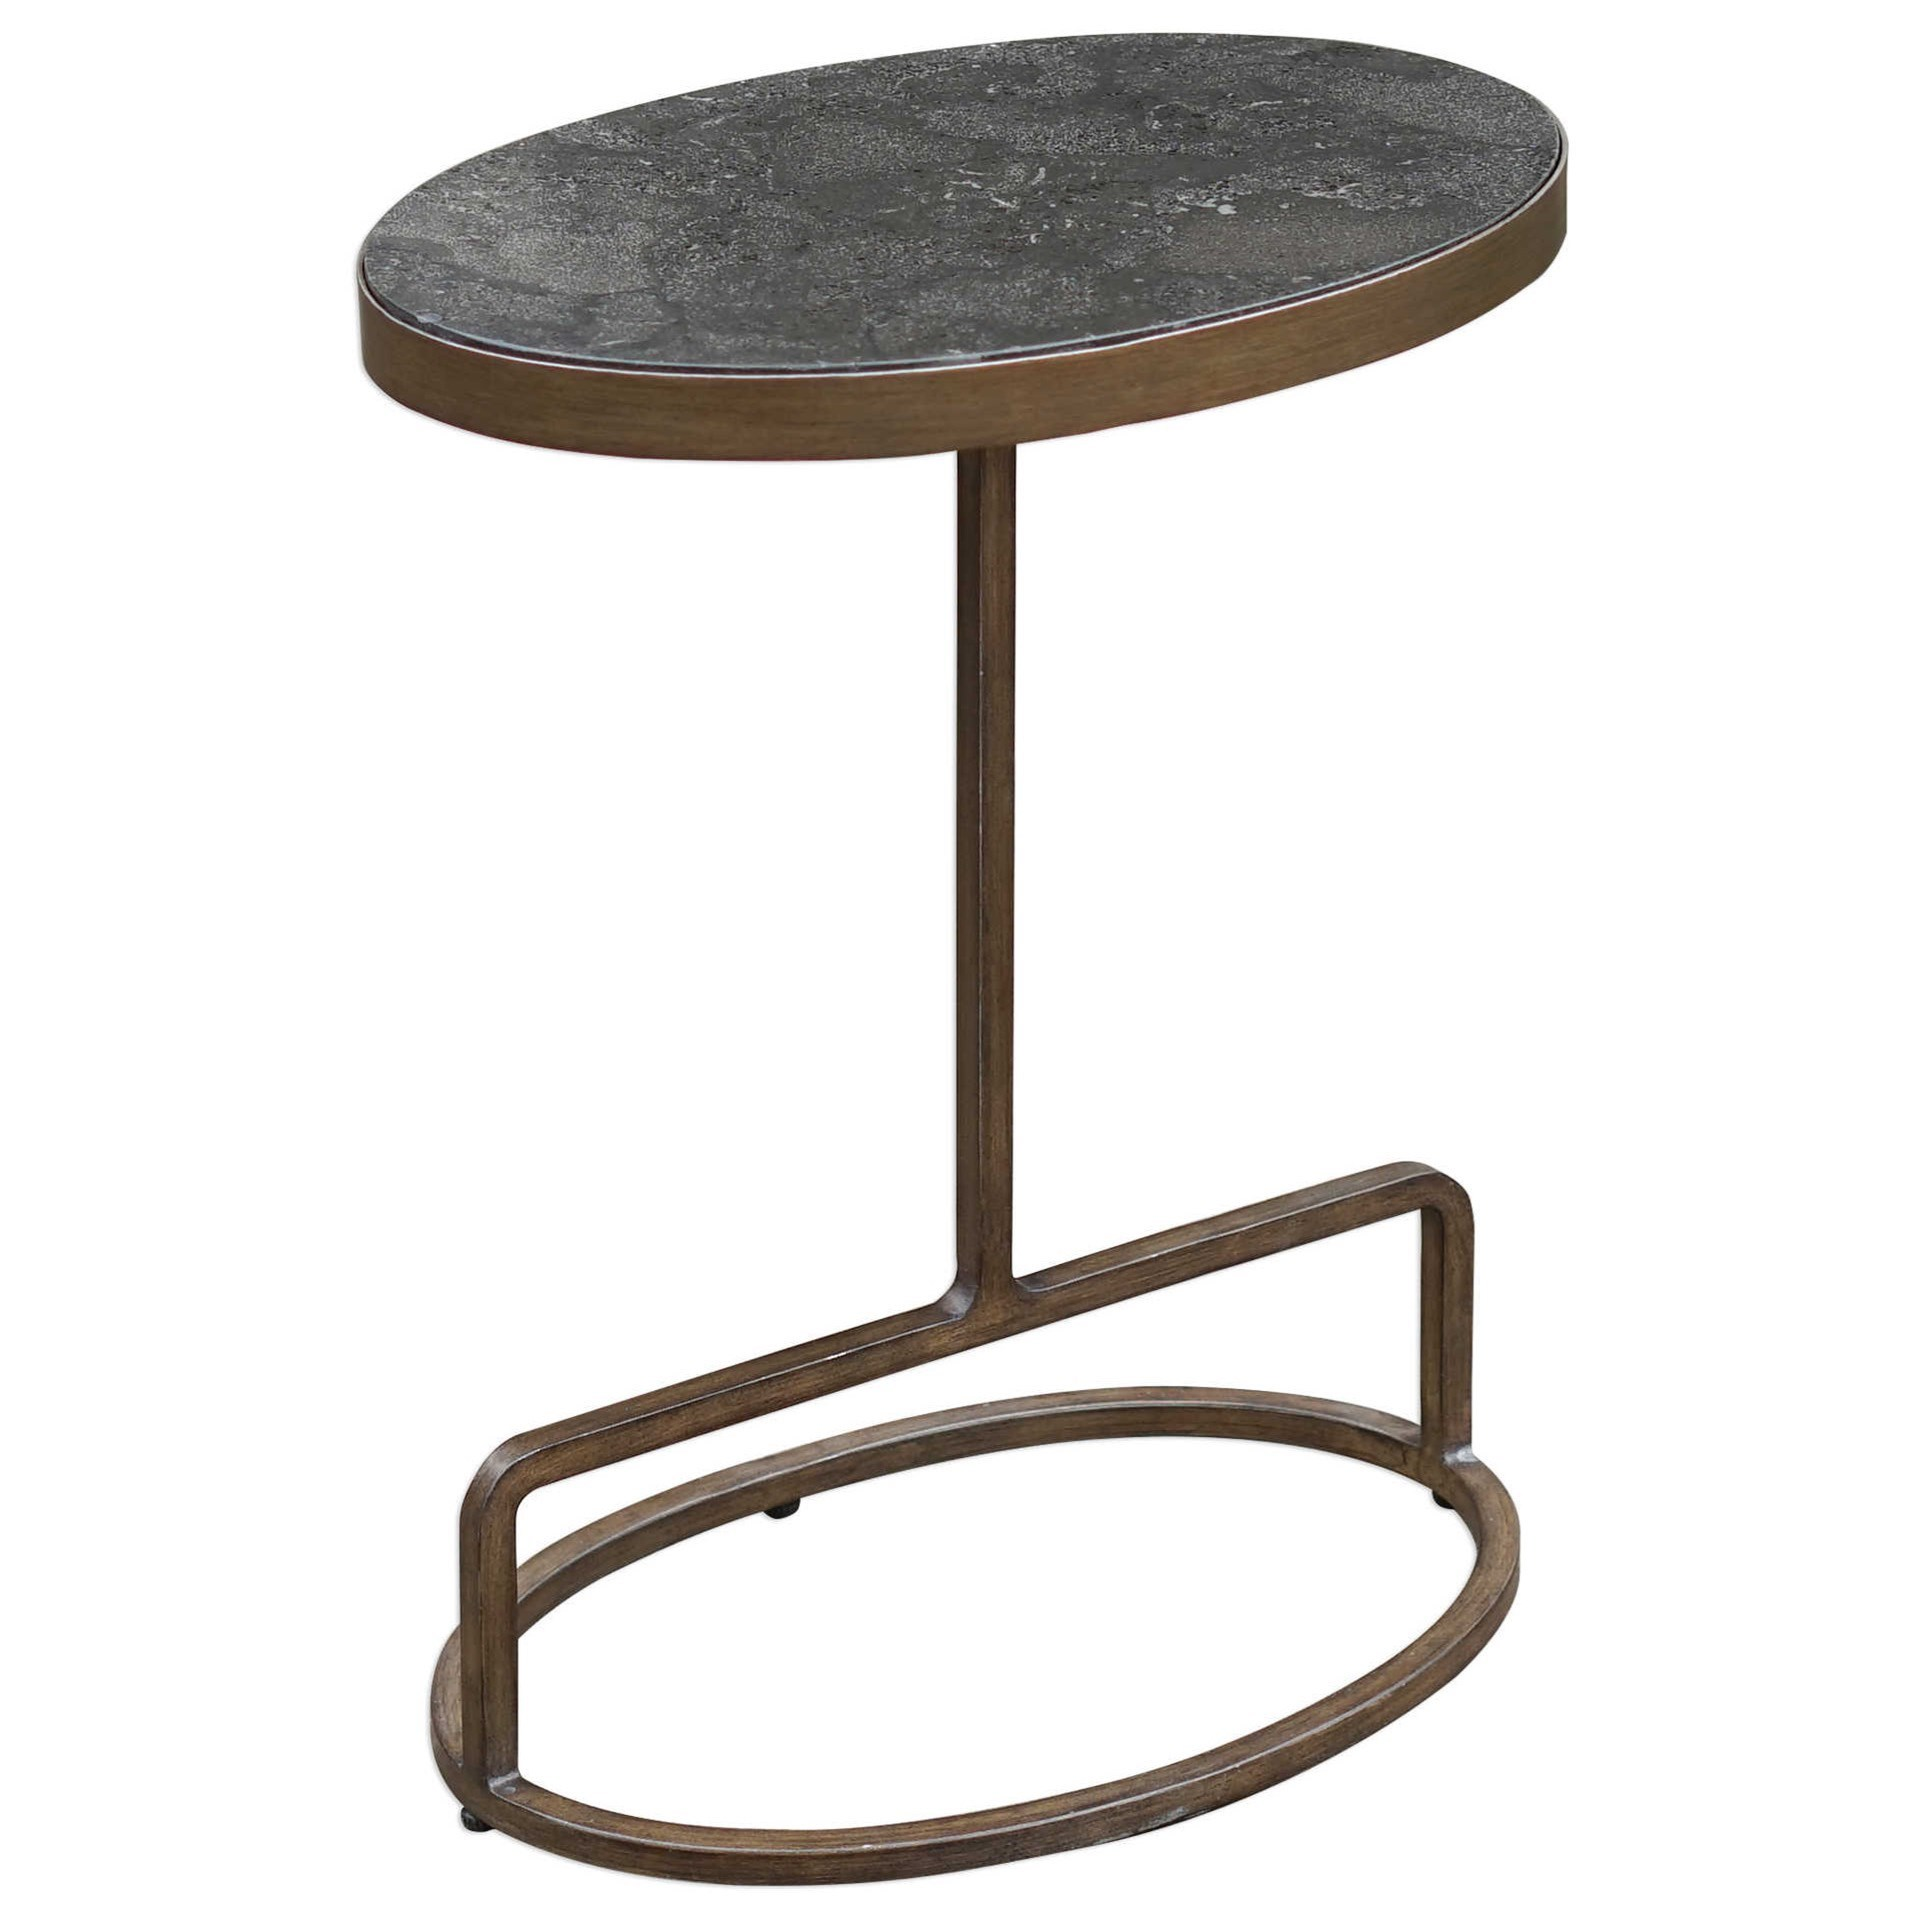 Accent Furniture - Occasional Tables Jessenia Stone Accent Table by Uttermost at Upper Room Home Furnishings